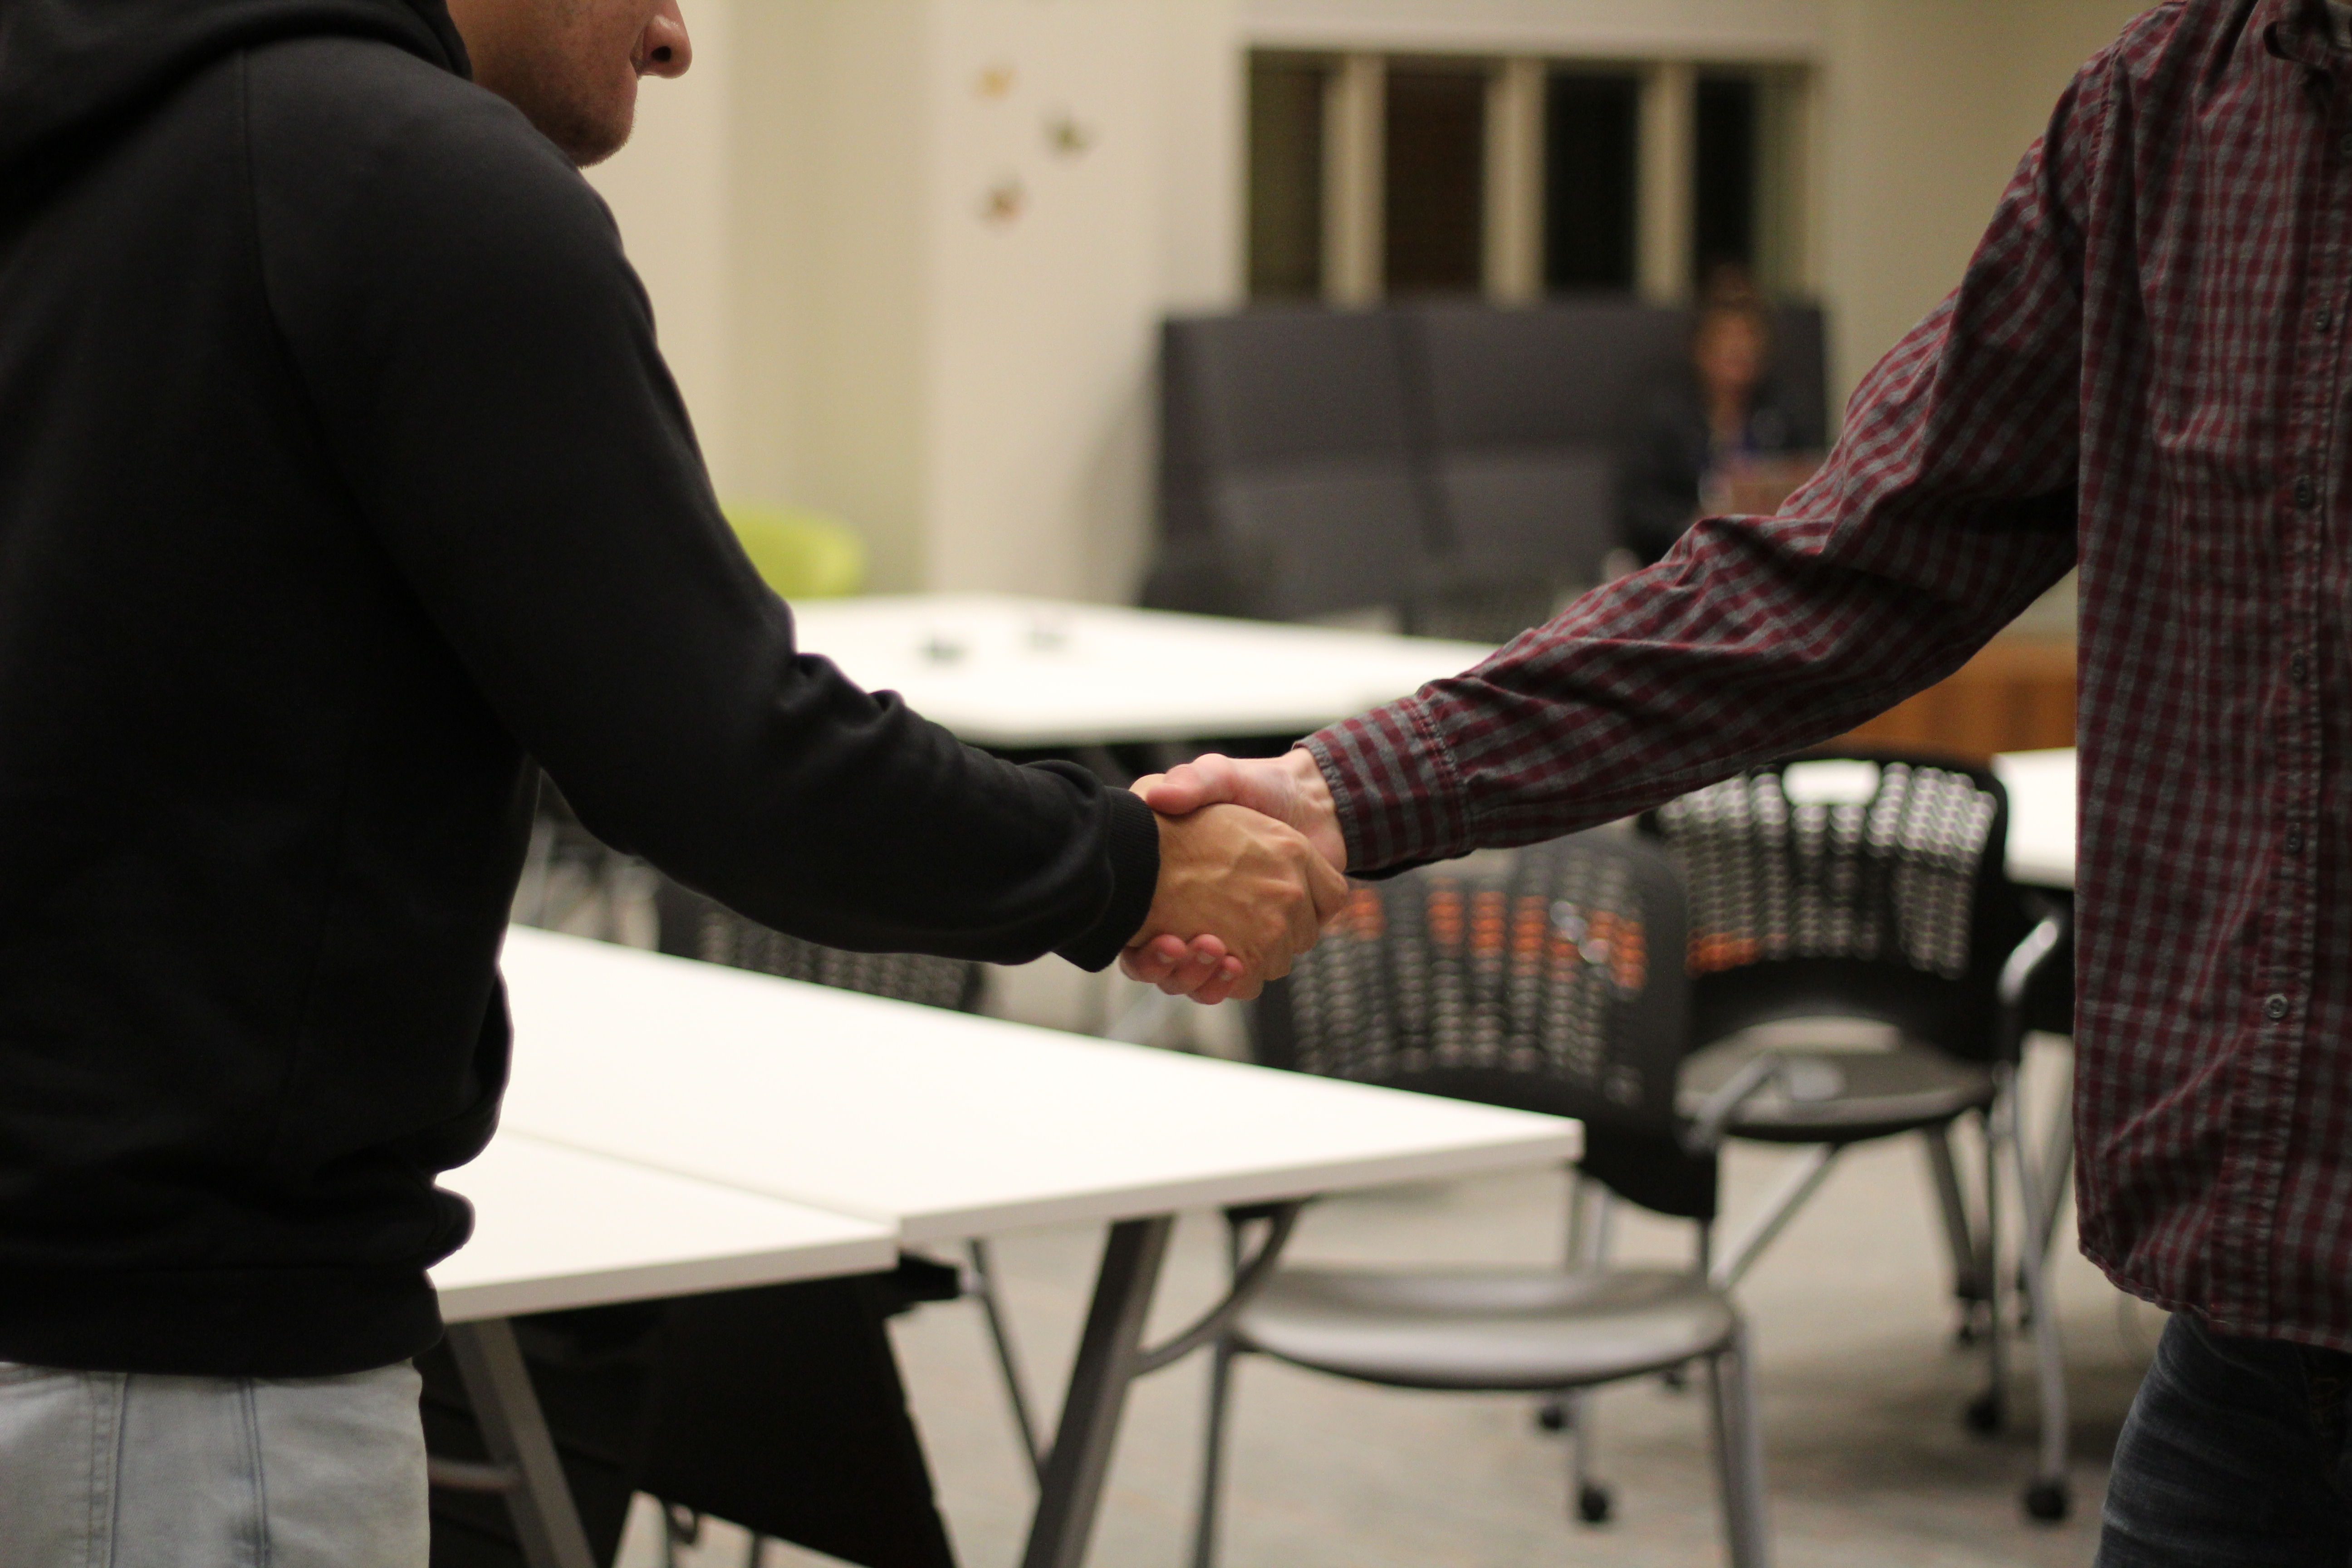 Let's talk about handshakes…